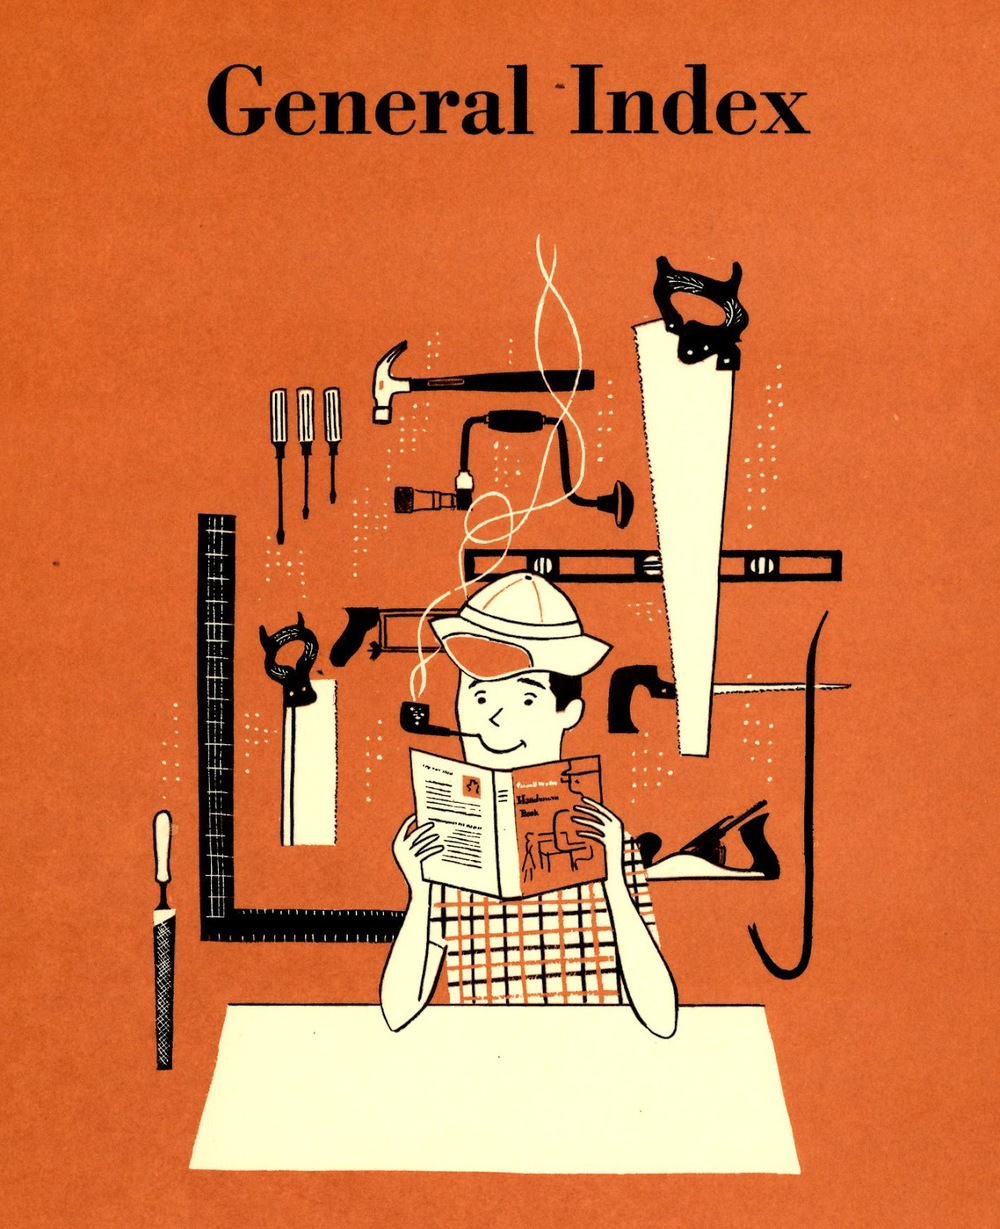 Lorraine Fox (uncredited), General Index, section divider illustration, BH & G Handyman's Book, 1957.